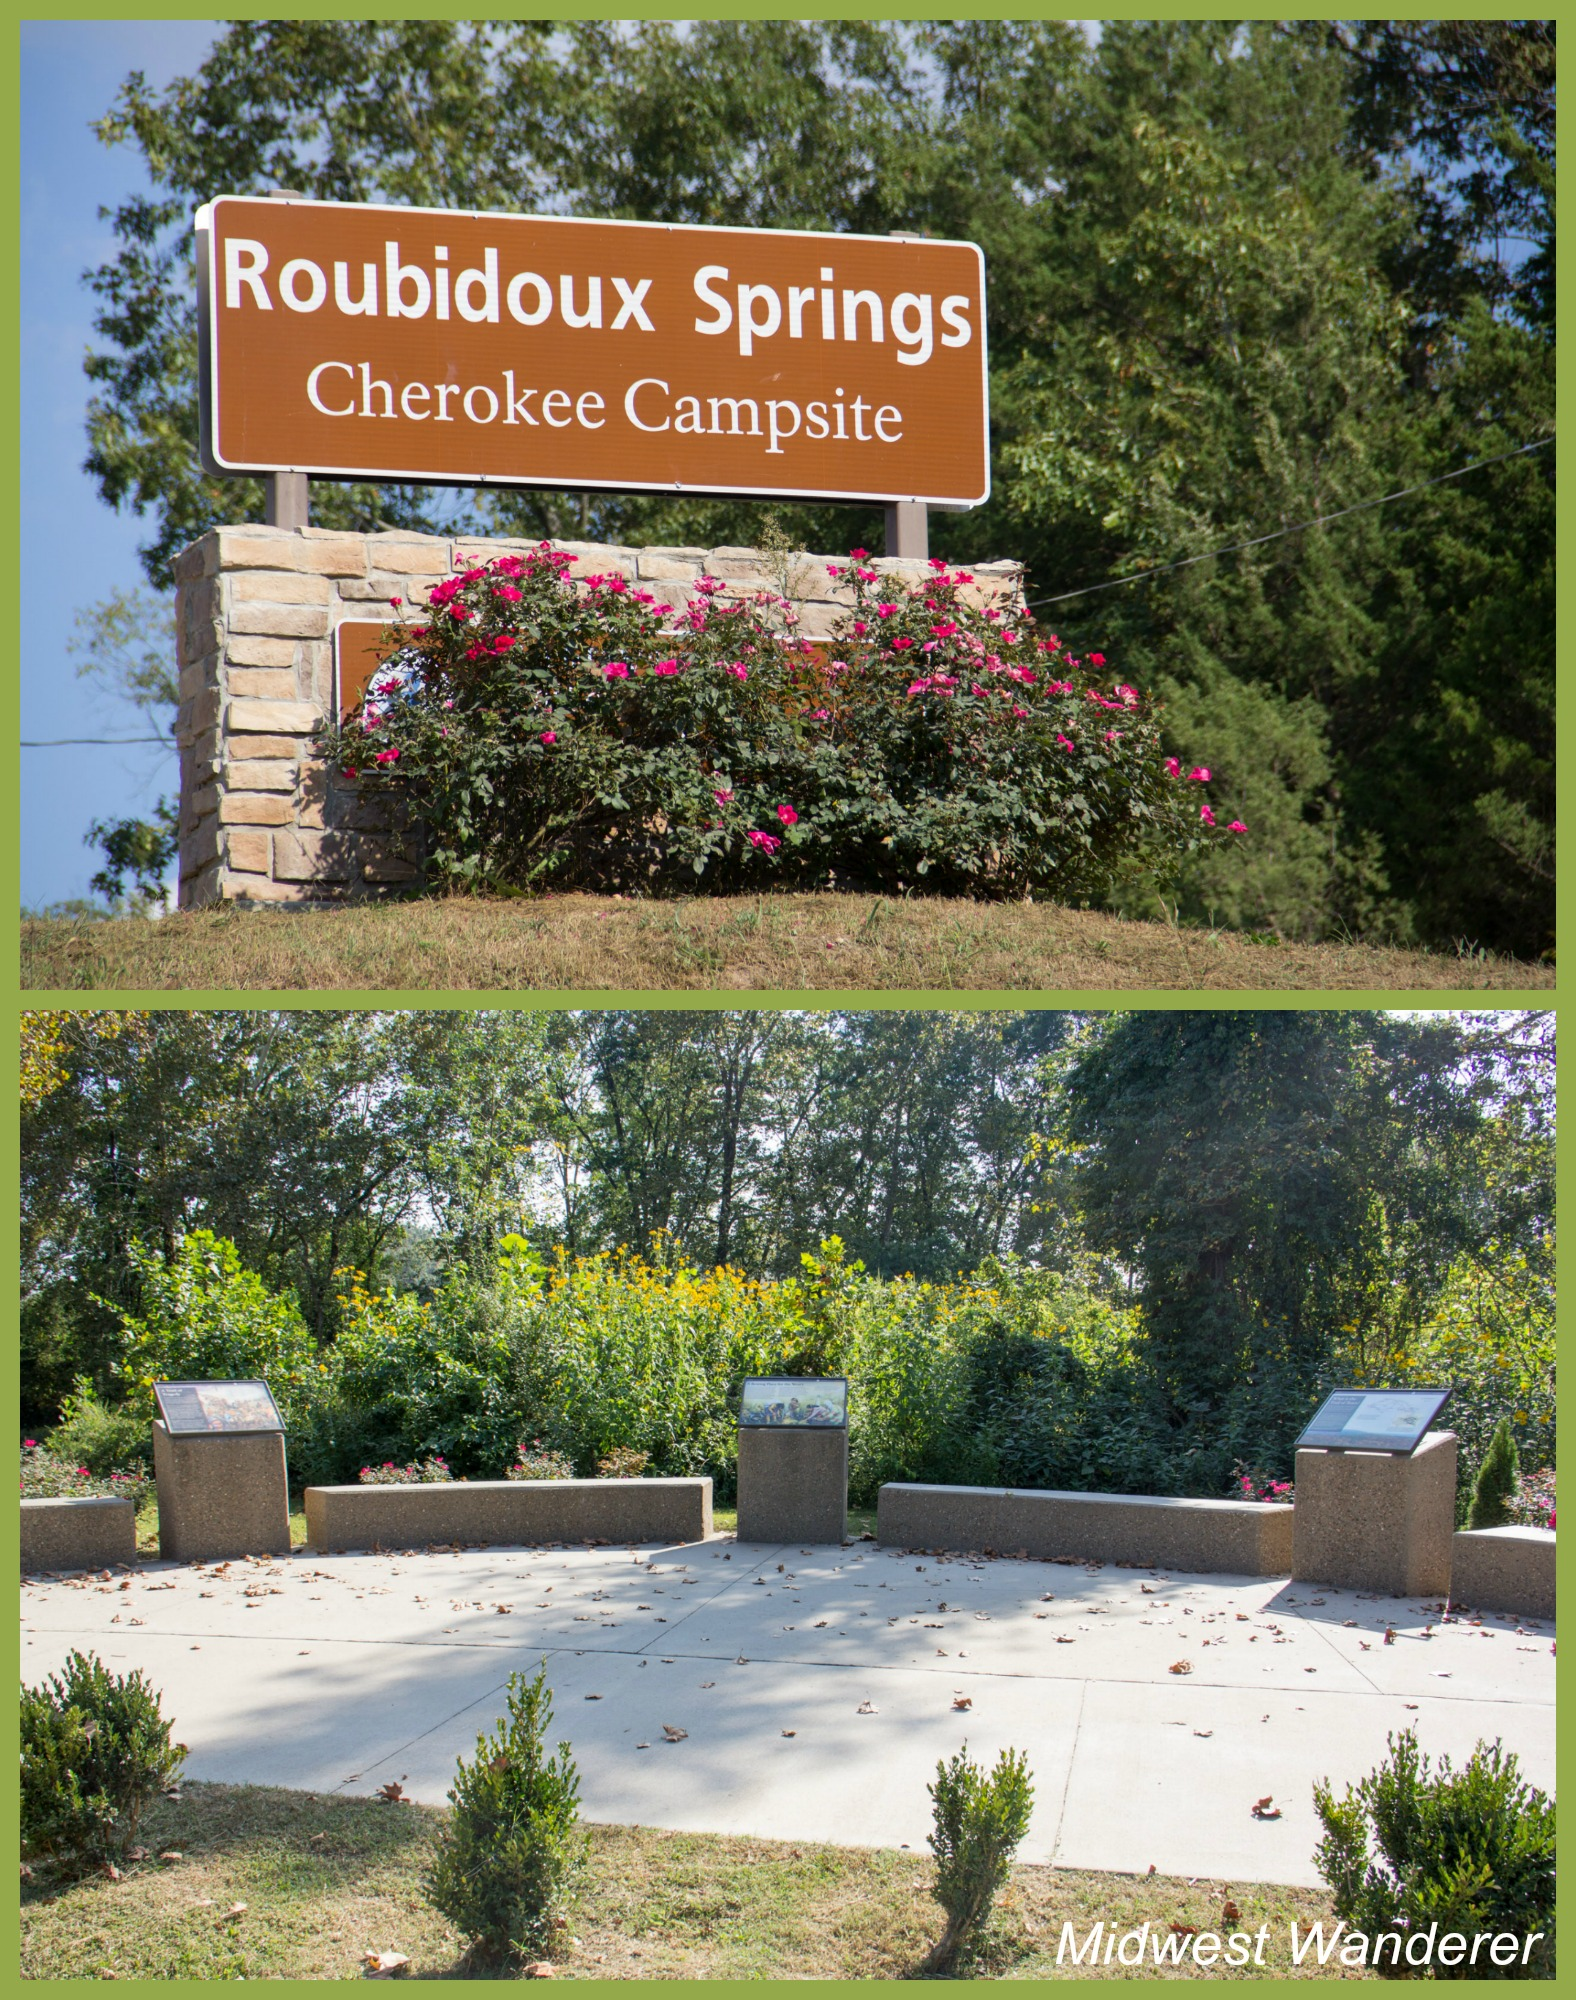 Trail of Tears Memorial at Roubidoux Springs